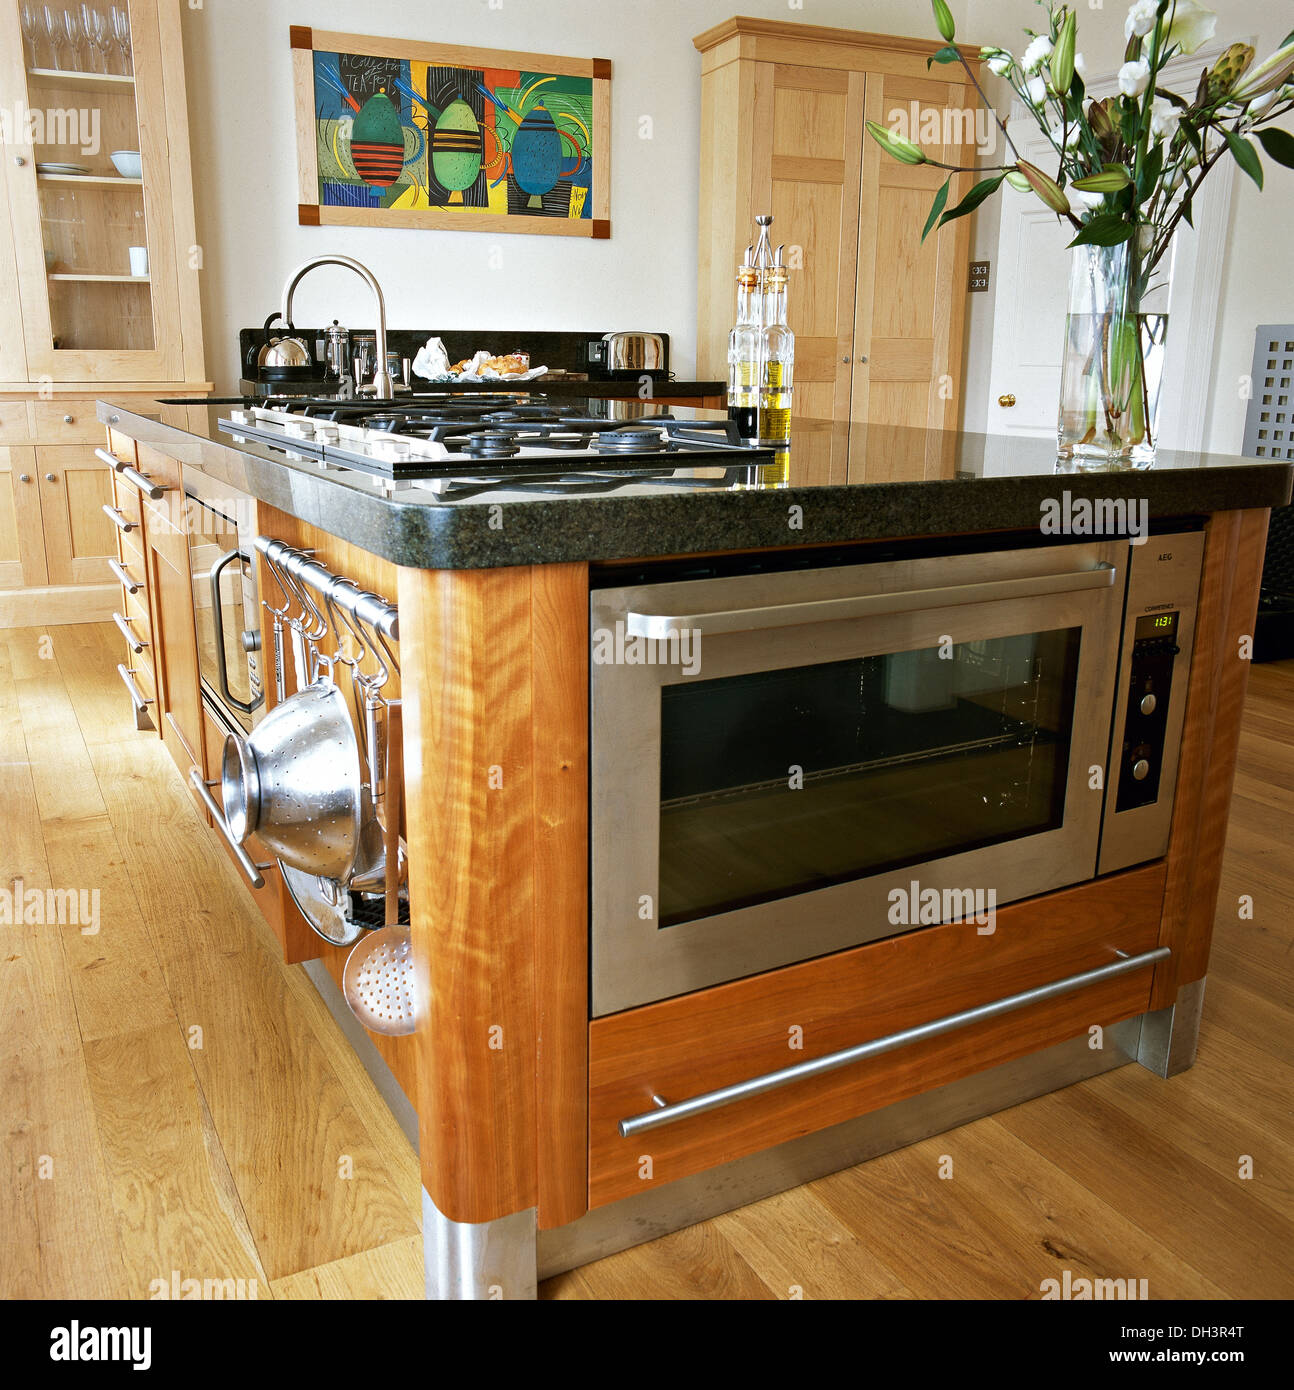 Stainless Steel Oven And Integral Hob In Central Island